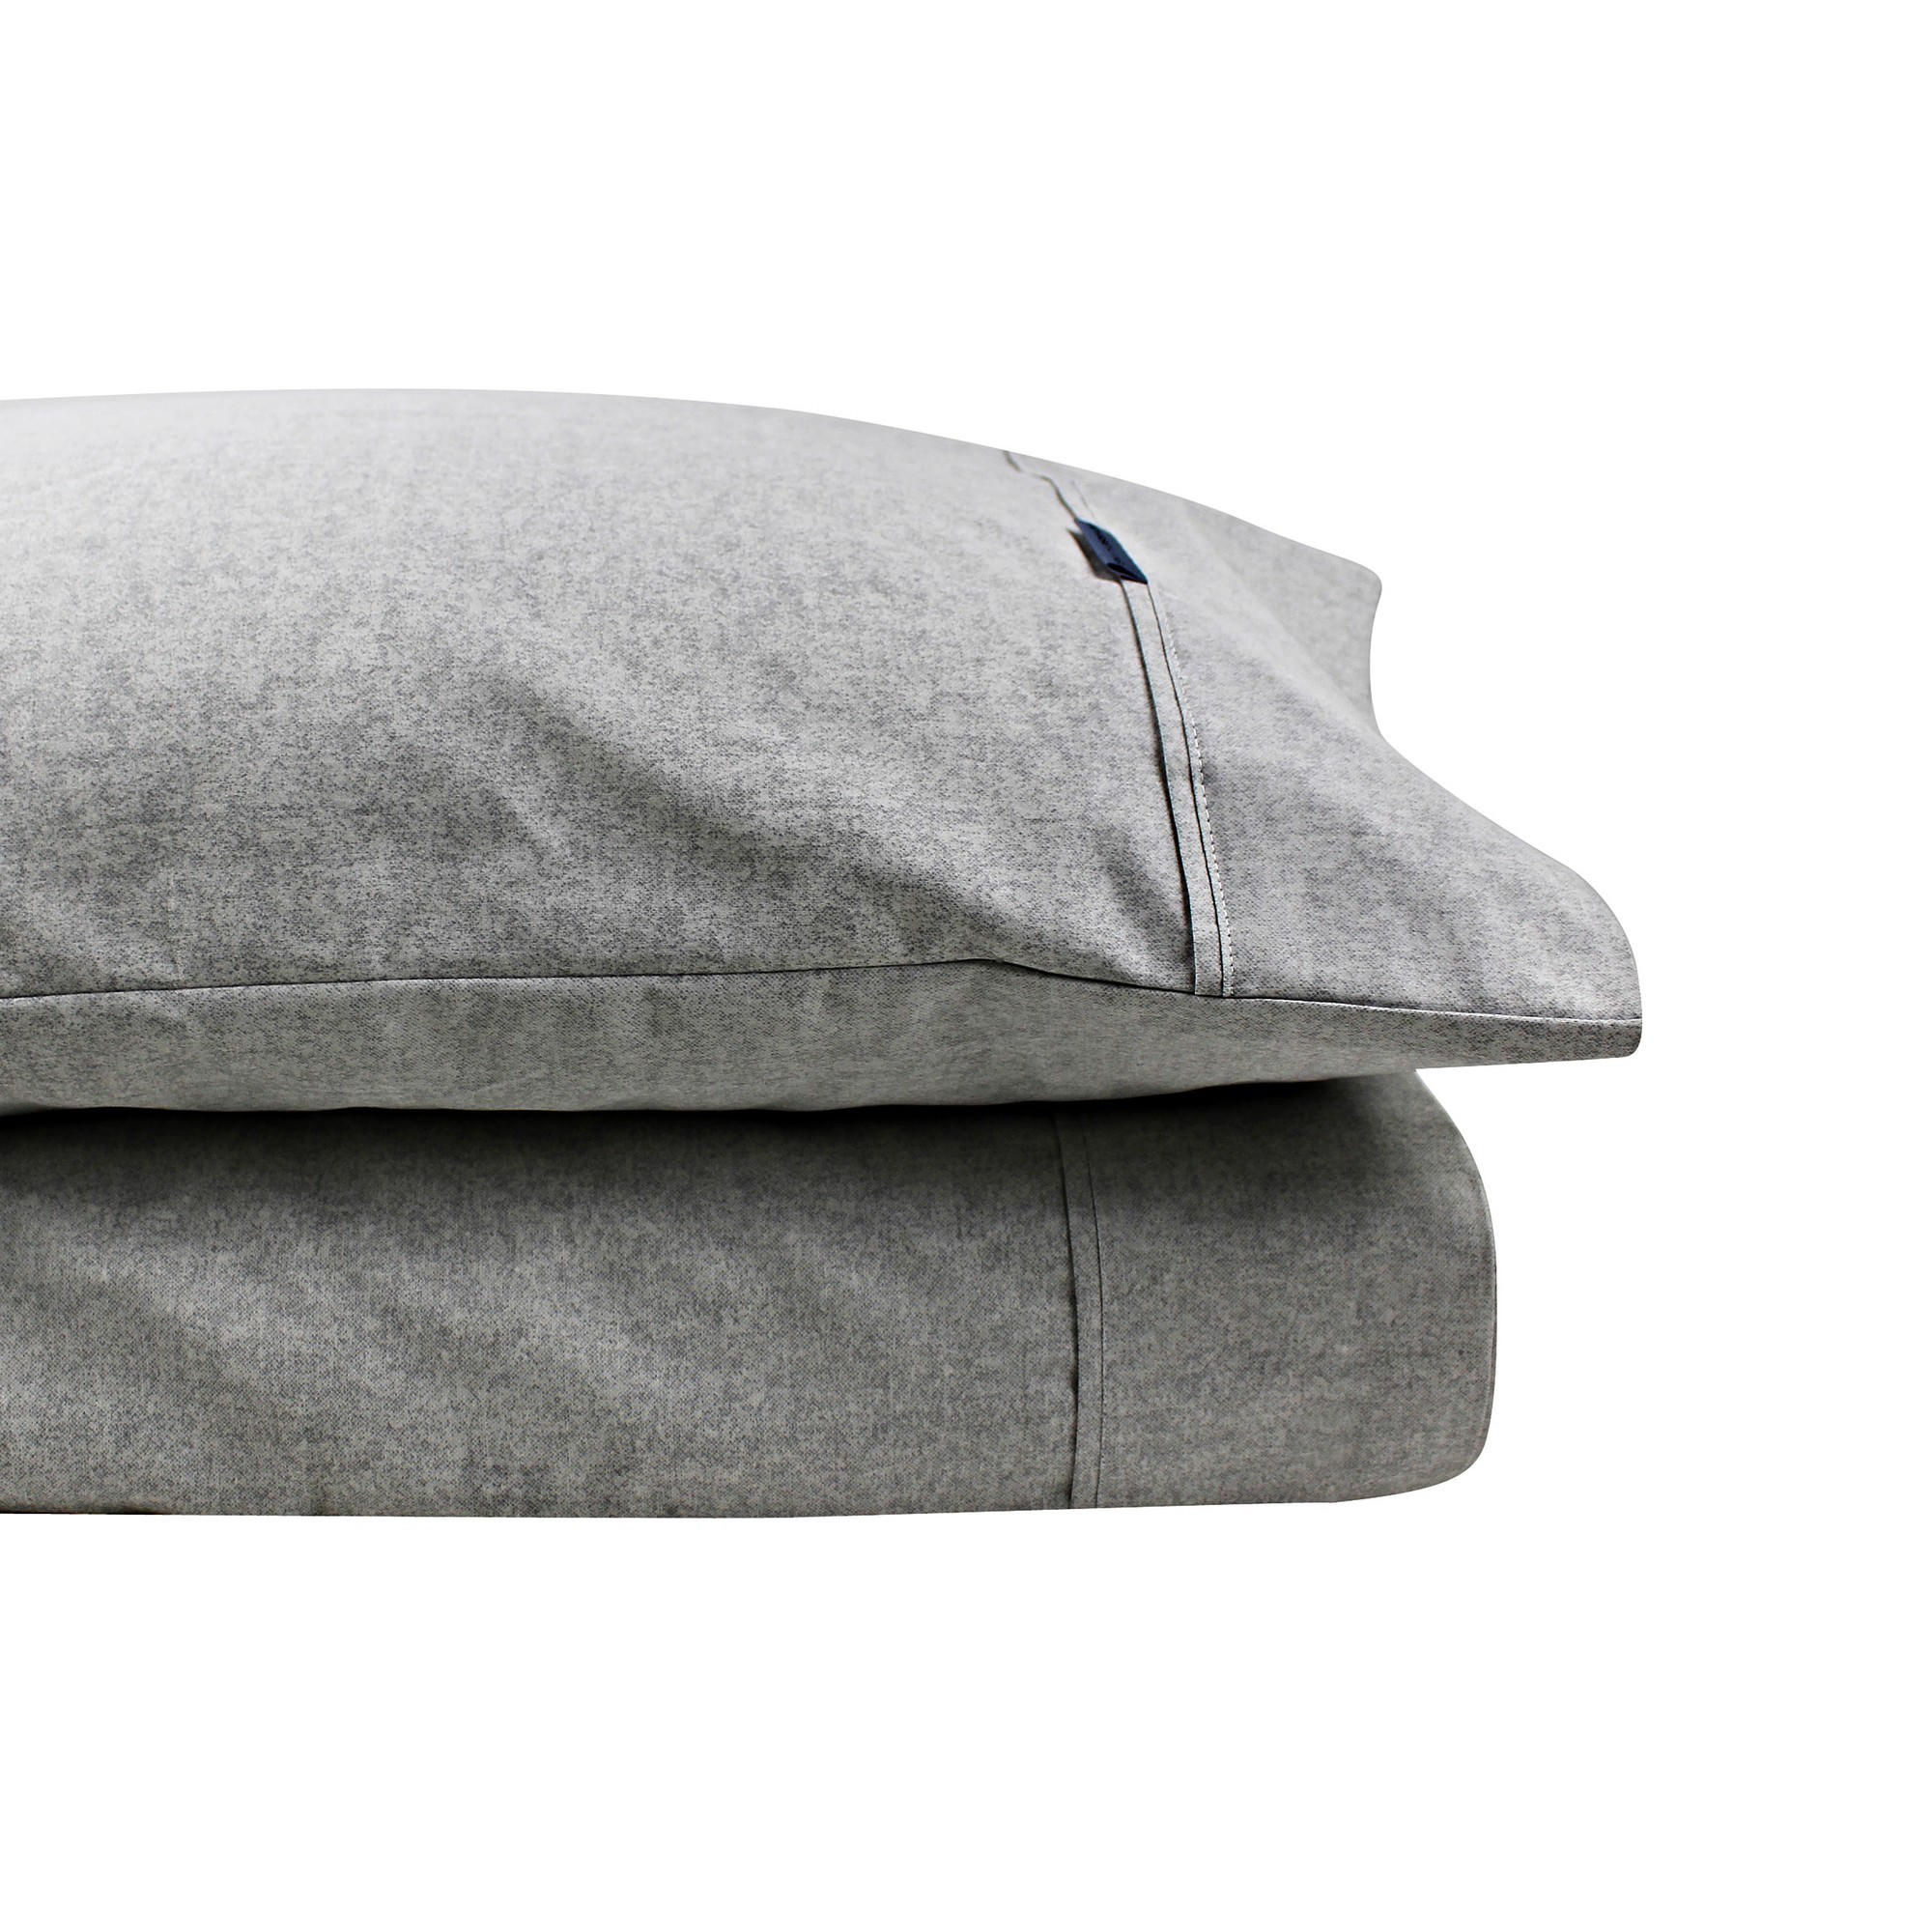 Odyssey Living Marle Thermal Flannel Sheet Set, Queen, Pale Grey